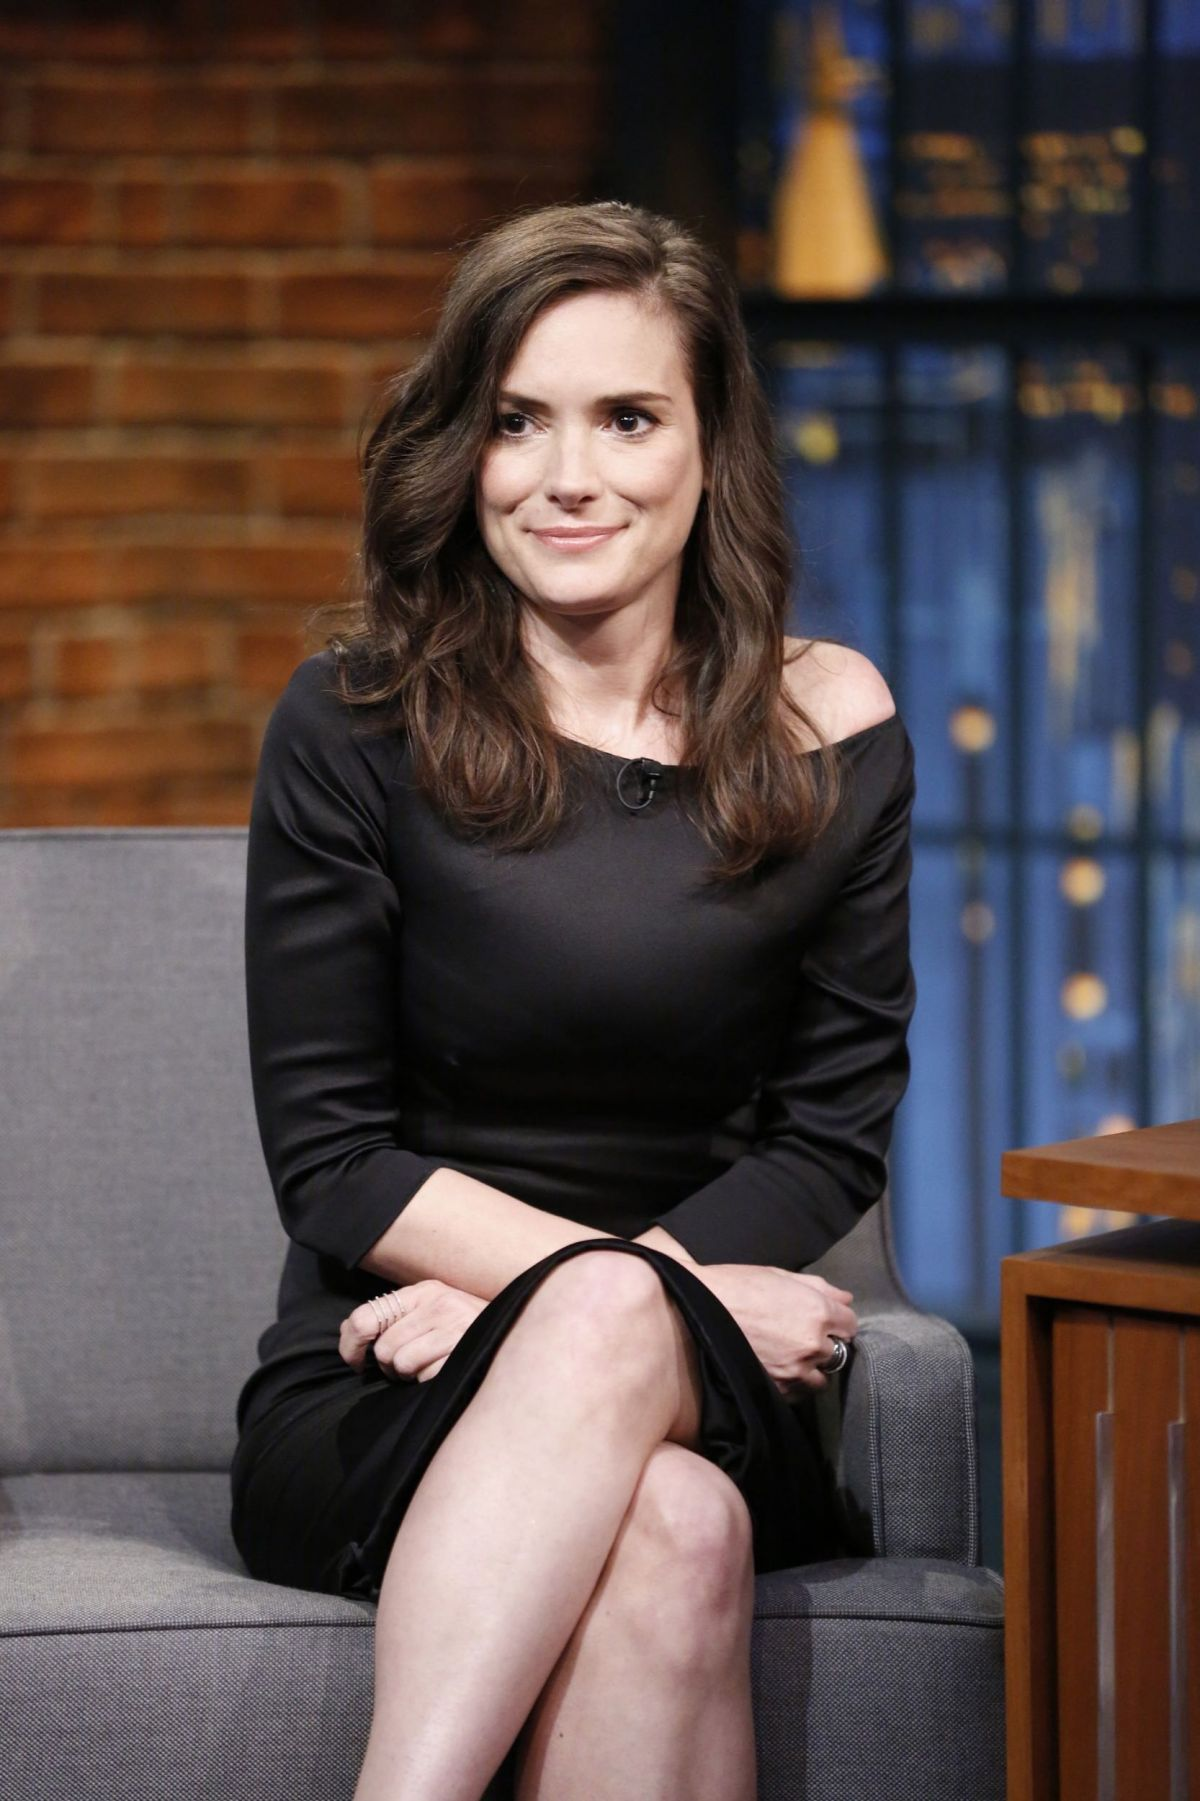 winona-ryder-at-late-night-with-seth-meyers-in-new-york-08-10-2015_1.jpg (1200×1801)